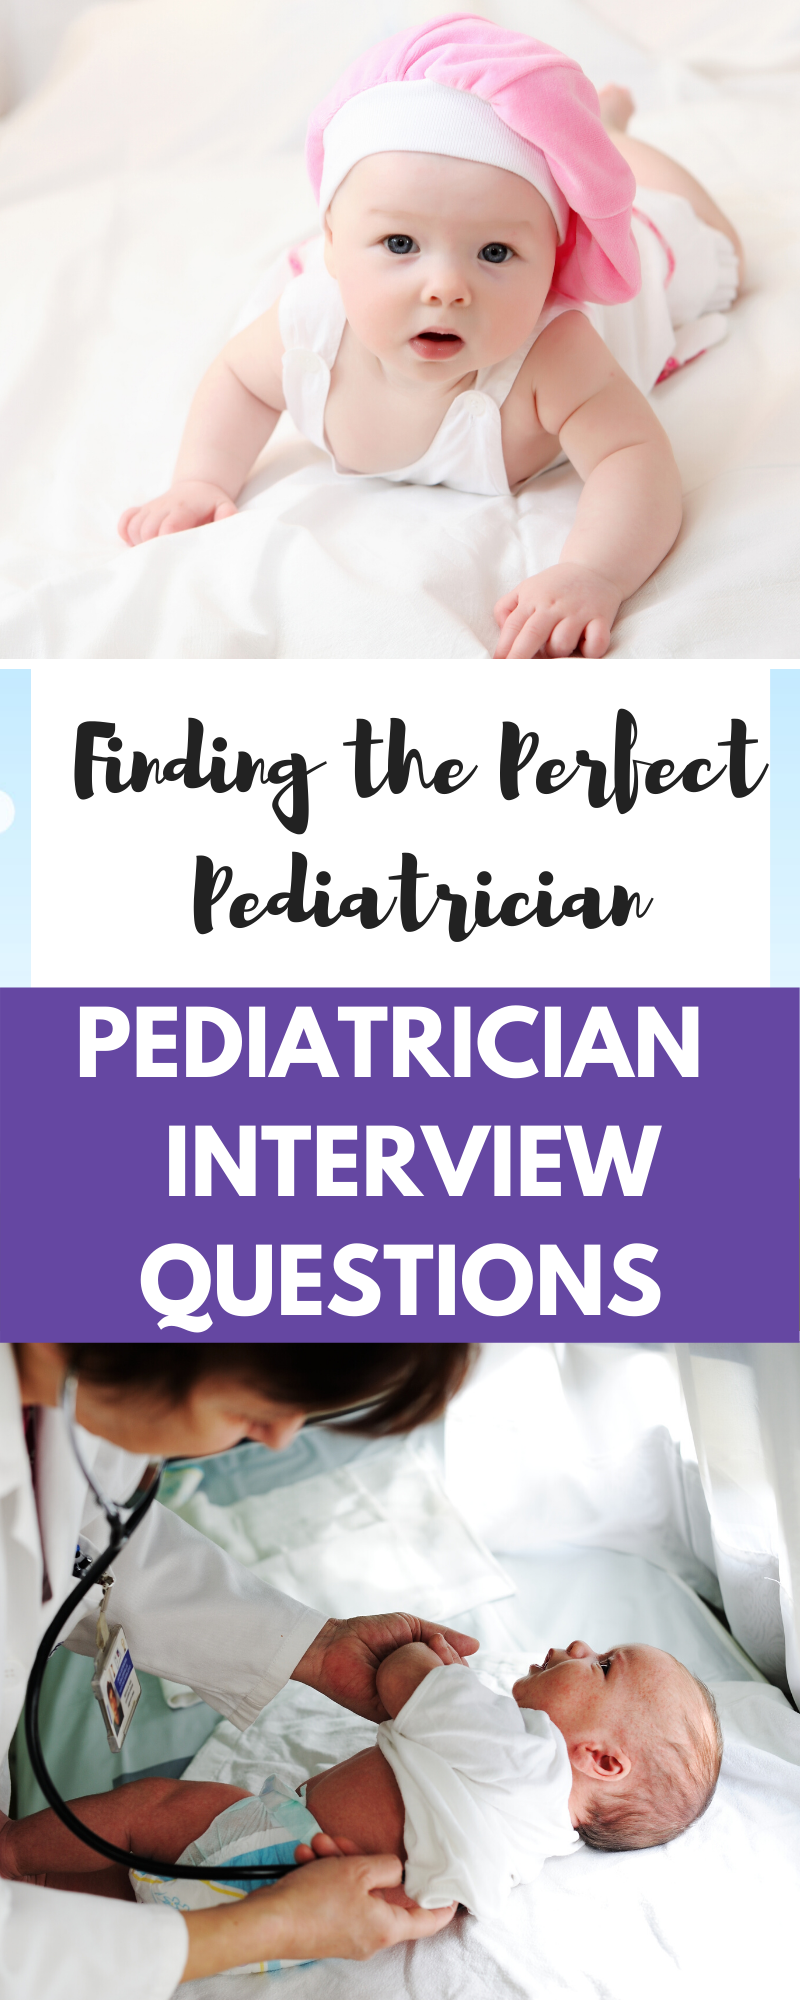 PEDIATRICIAN INTERVIEW QUESTIONS